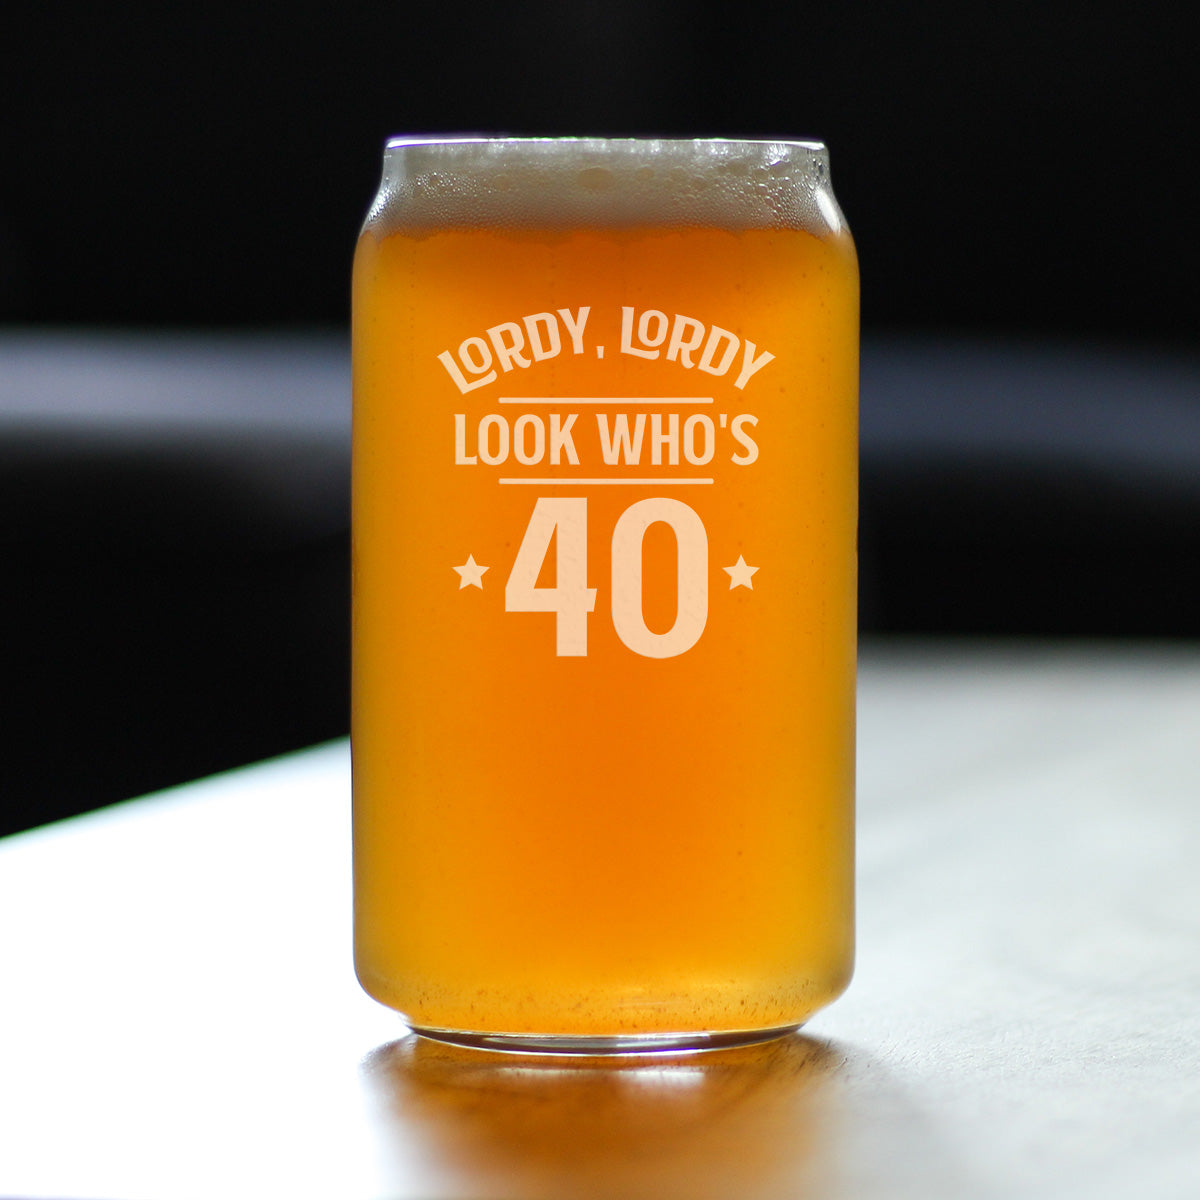 Lordy Lordy Look Who's 40 - 16 Ounce Beer Can Pint Glass